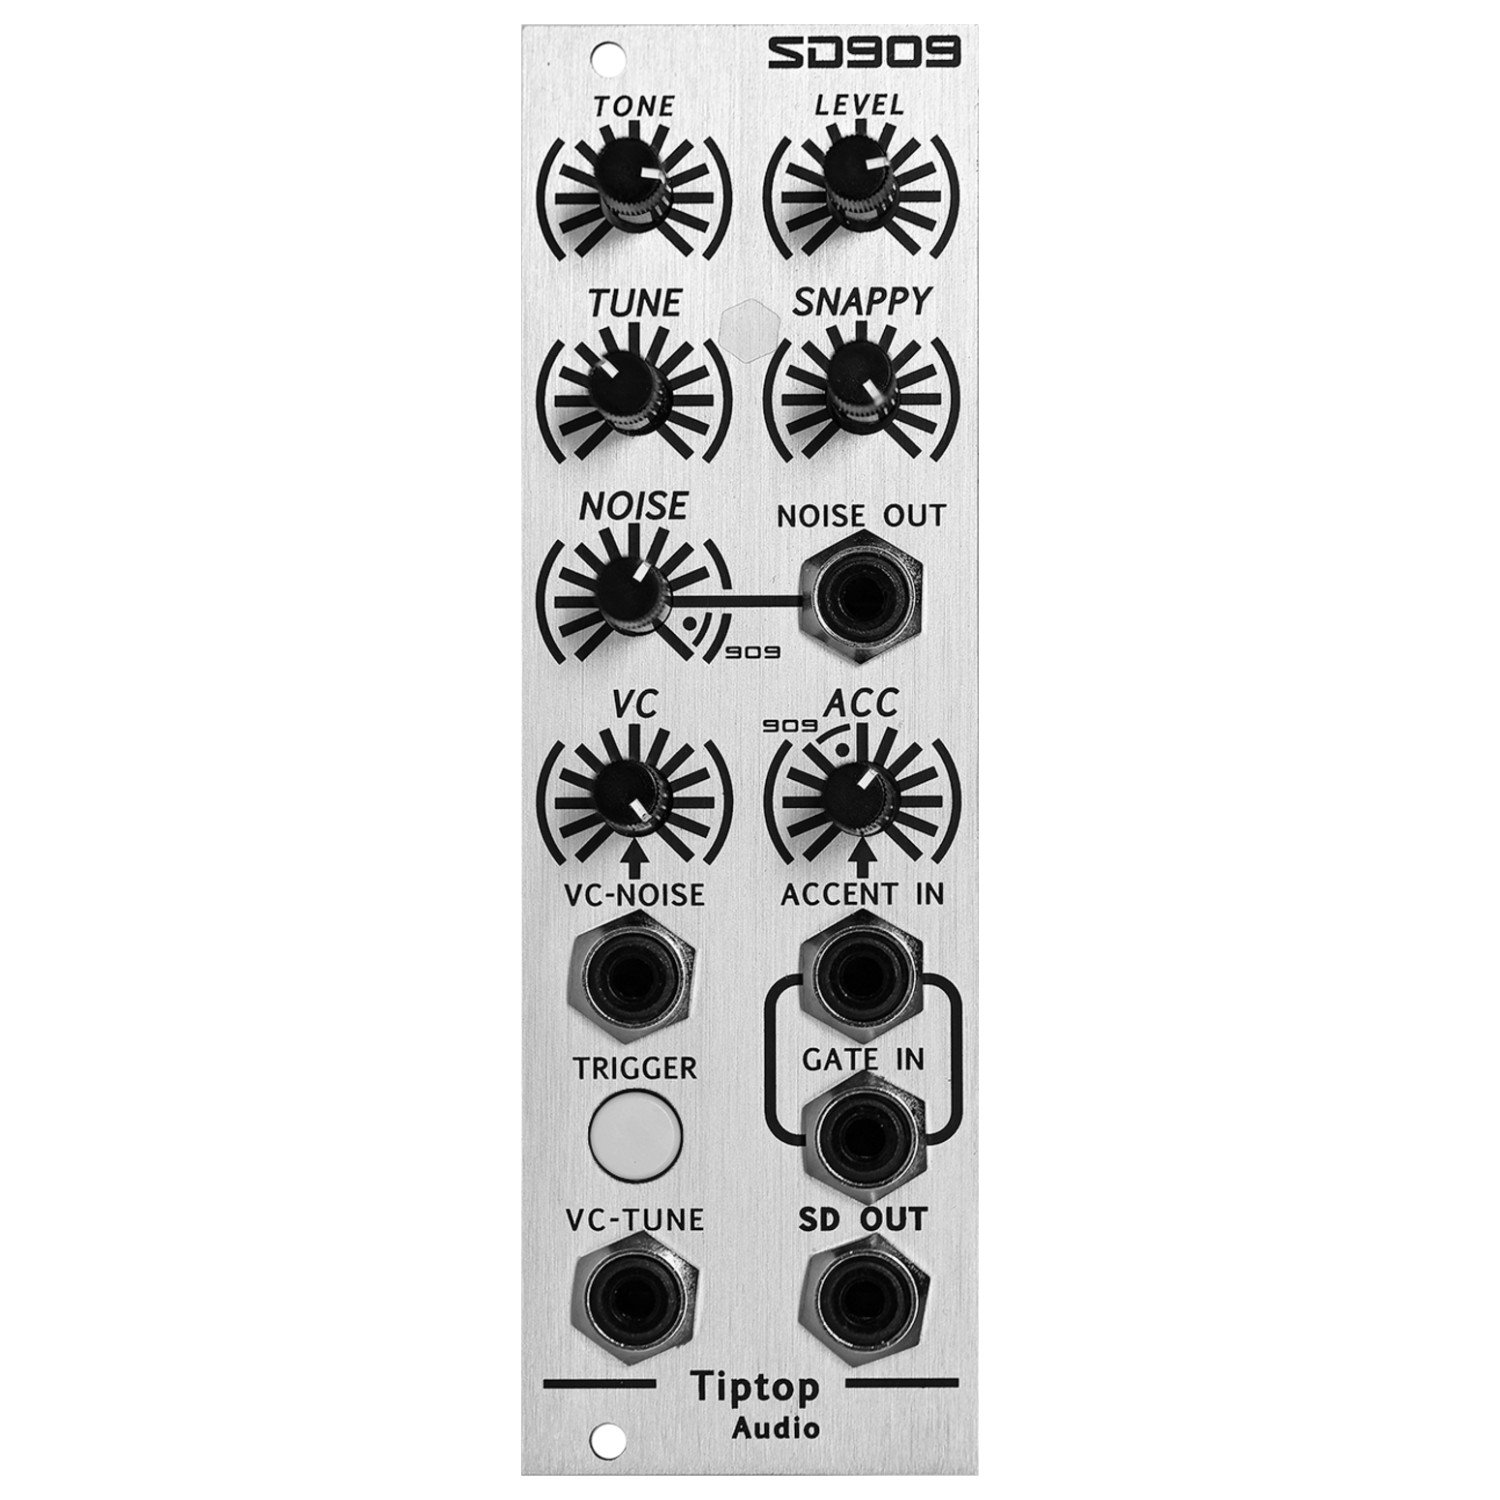 Tiptop SD909 Modular TR909 Snare and Noise Generator Eurorack Synth Module by Tiptop Audio